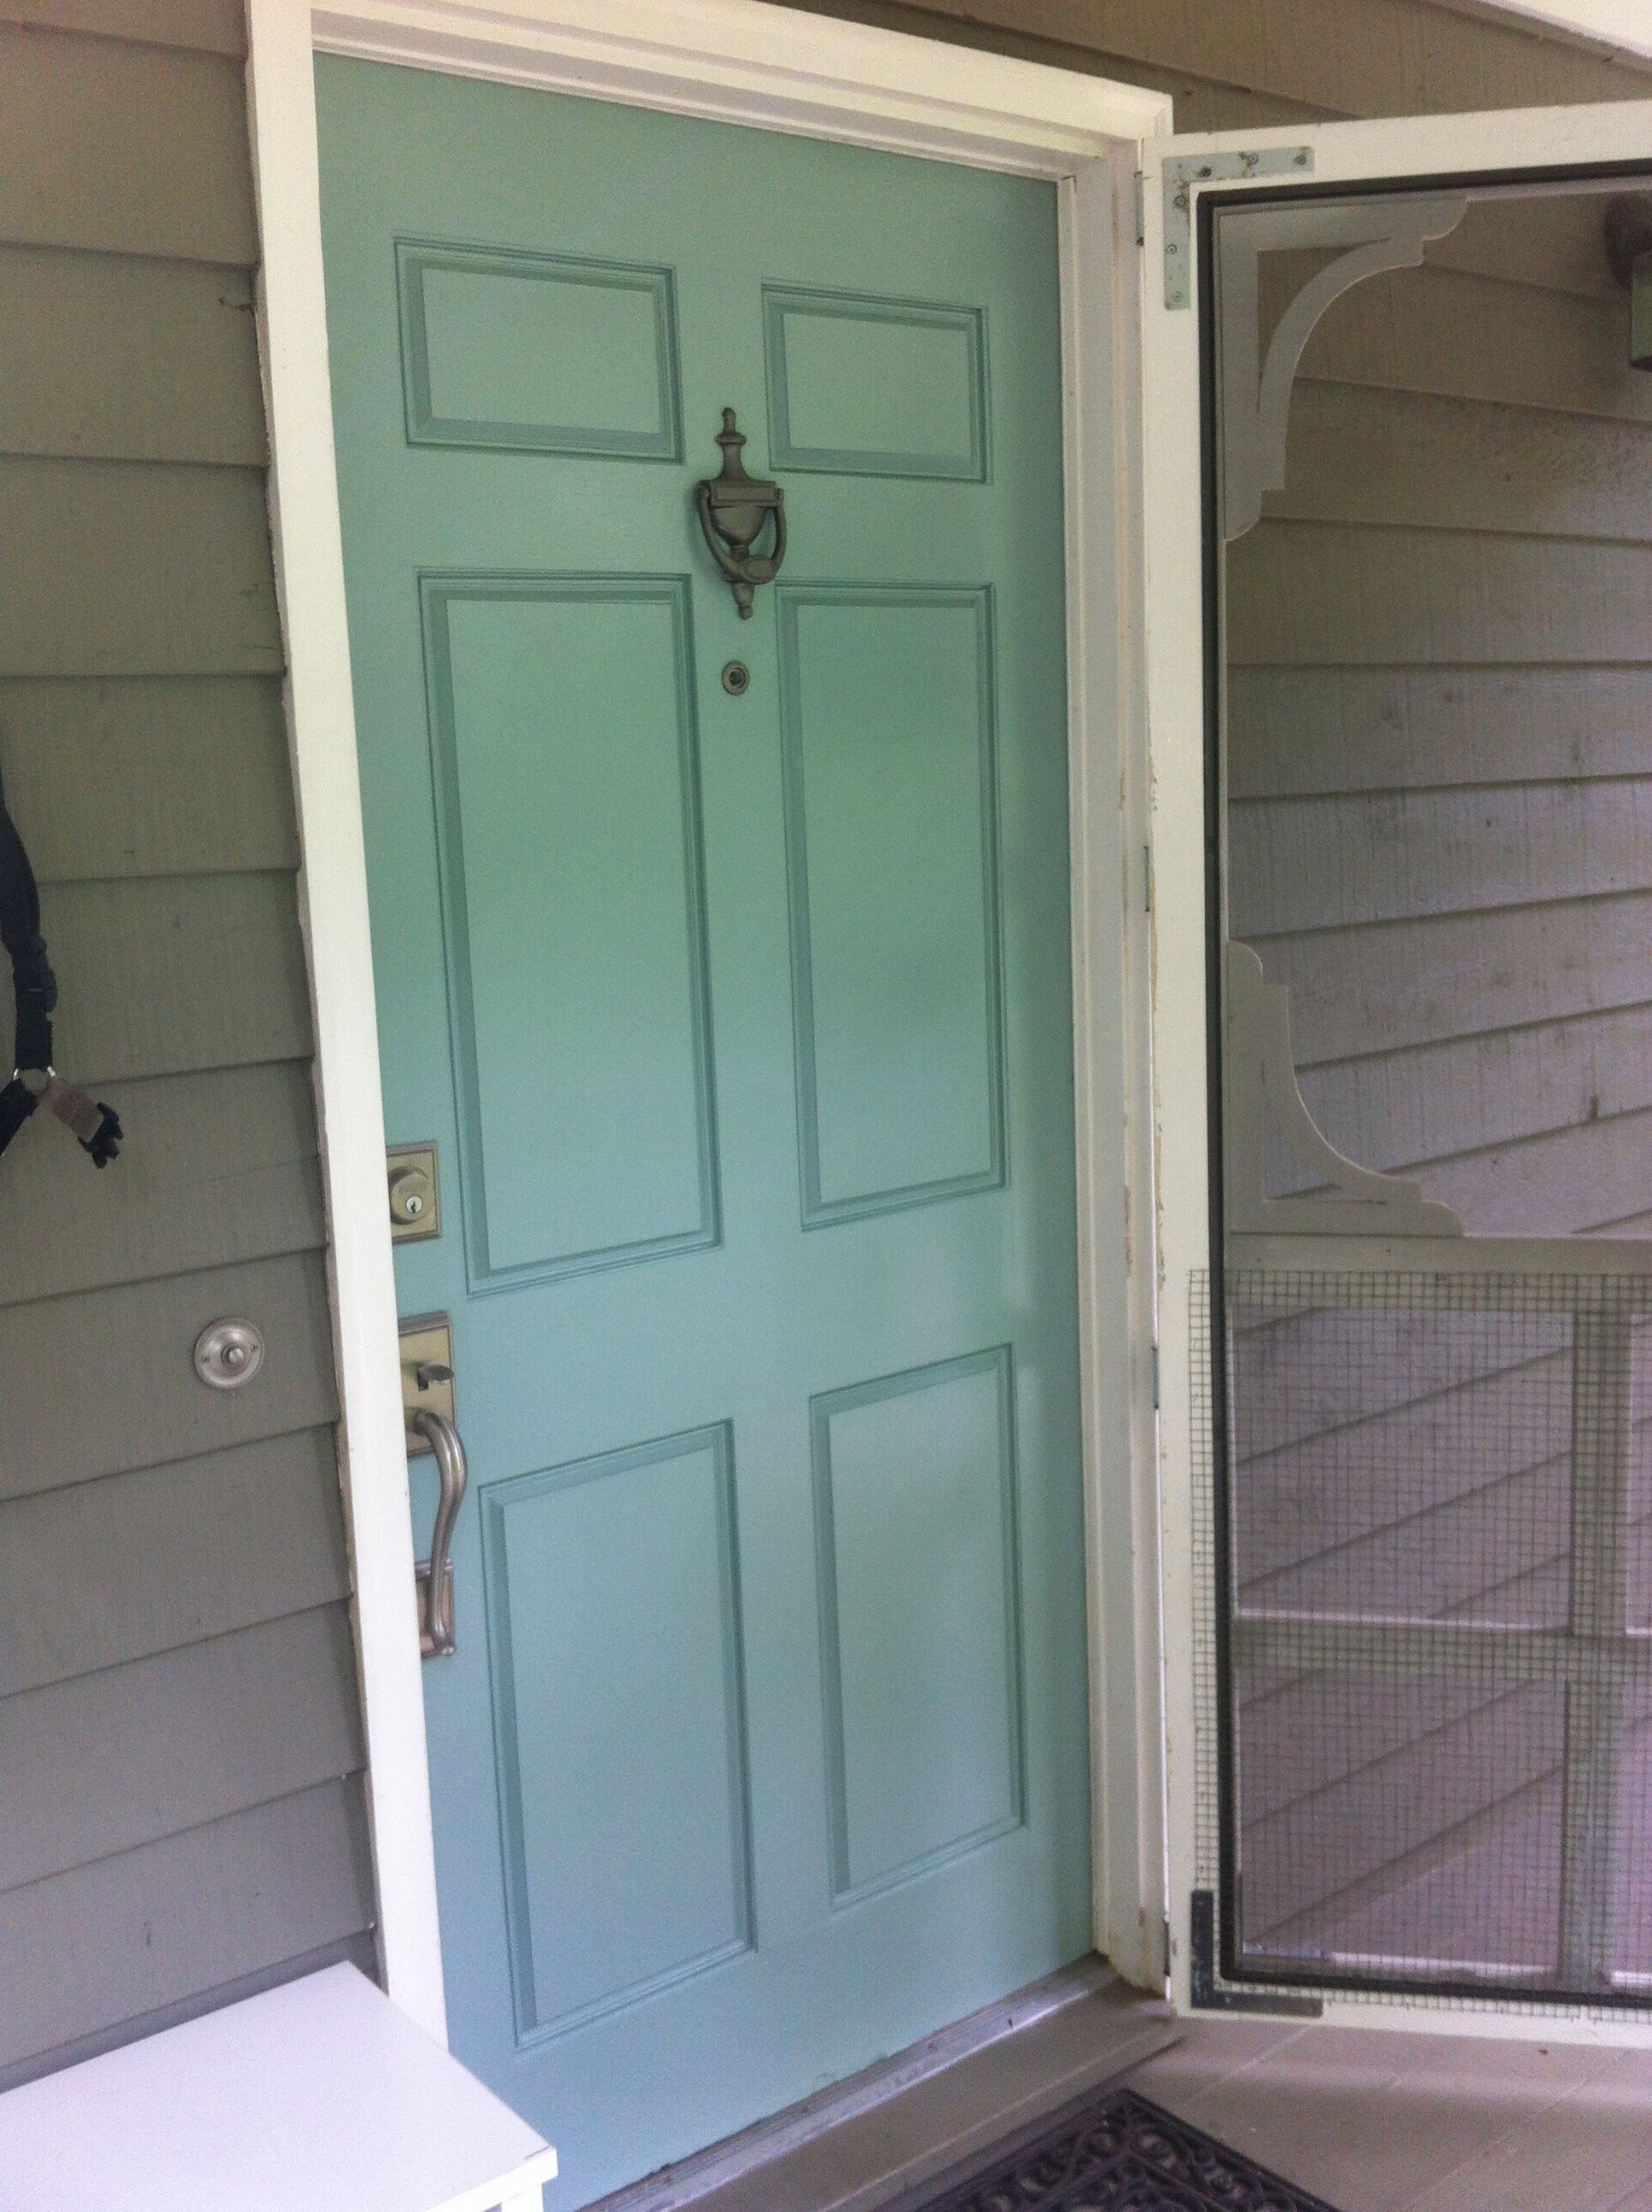 I Painted Our Front Door Benjamin Moore Stratton Blue Love It Will Keep The Screened White